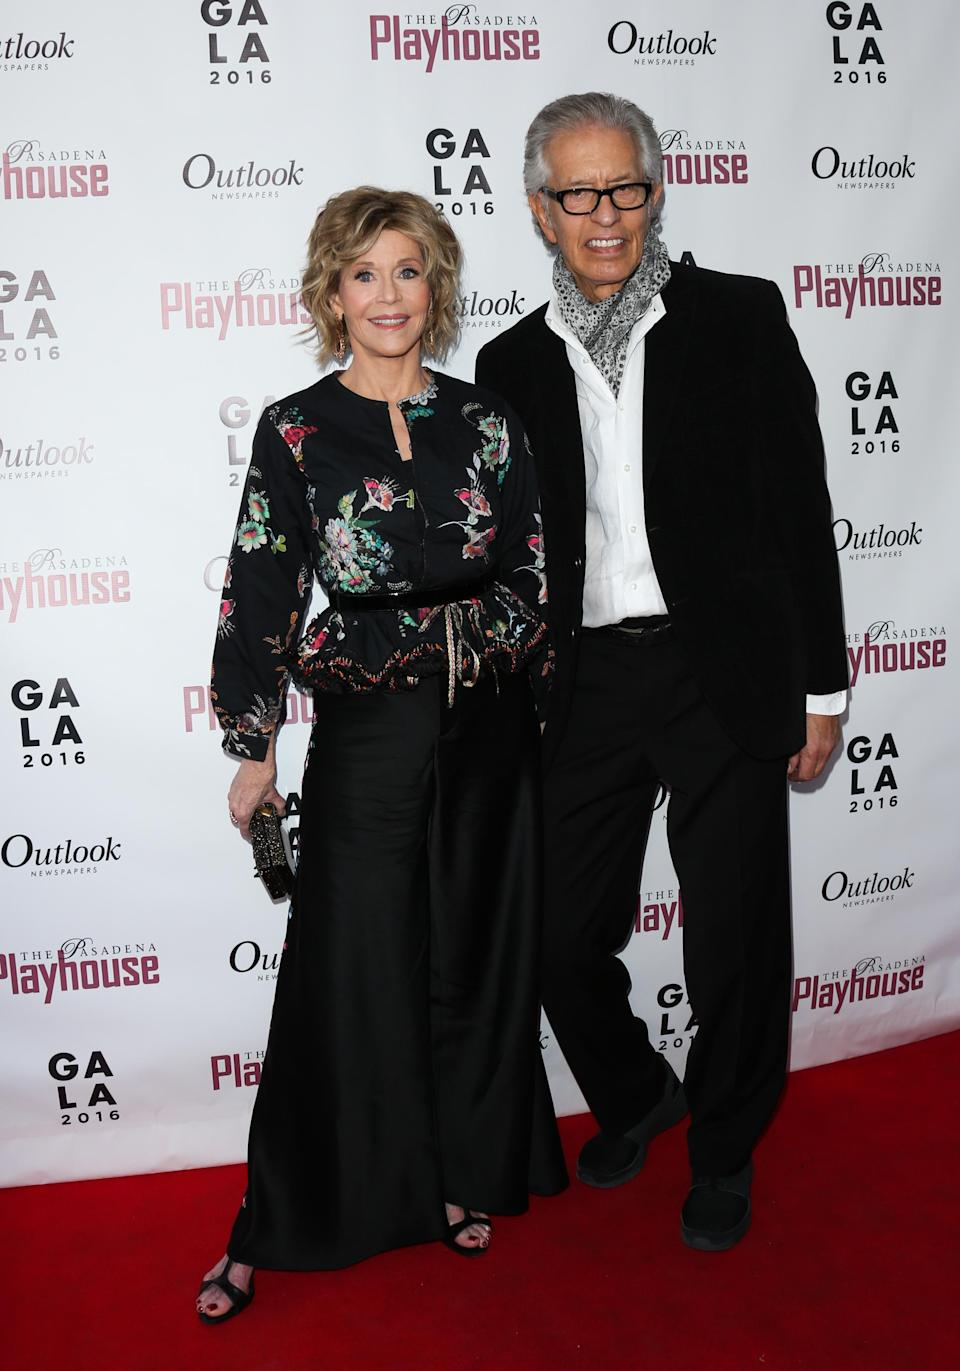 Jane Fonda and music producer Richard Perry, pictured here in April 2016, announced the end of their eight-year romance in January 2017. (Photo: Paul Archuleta/FilmMagic)